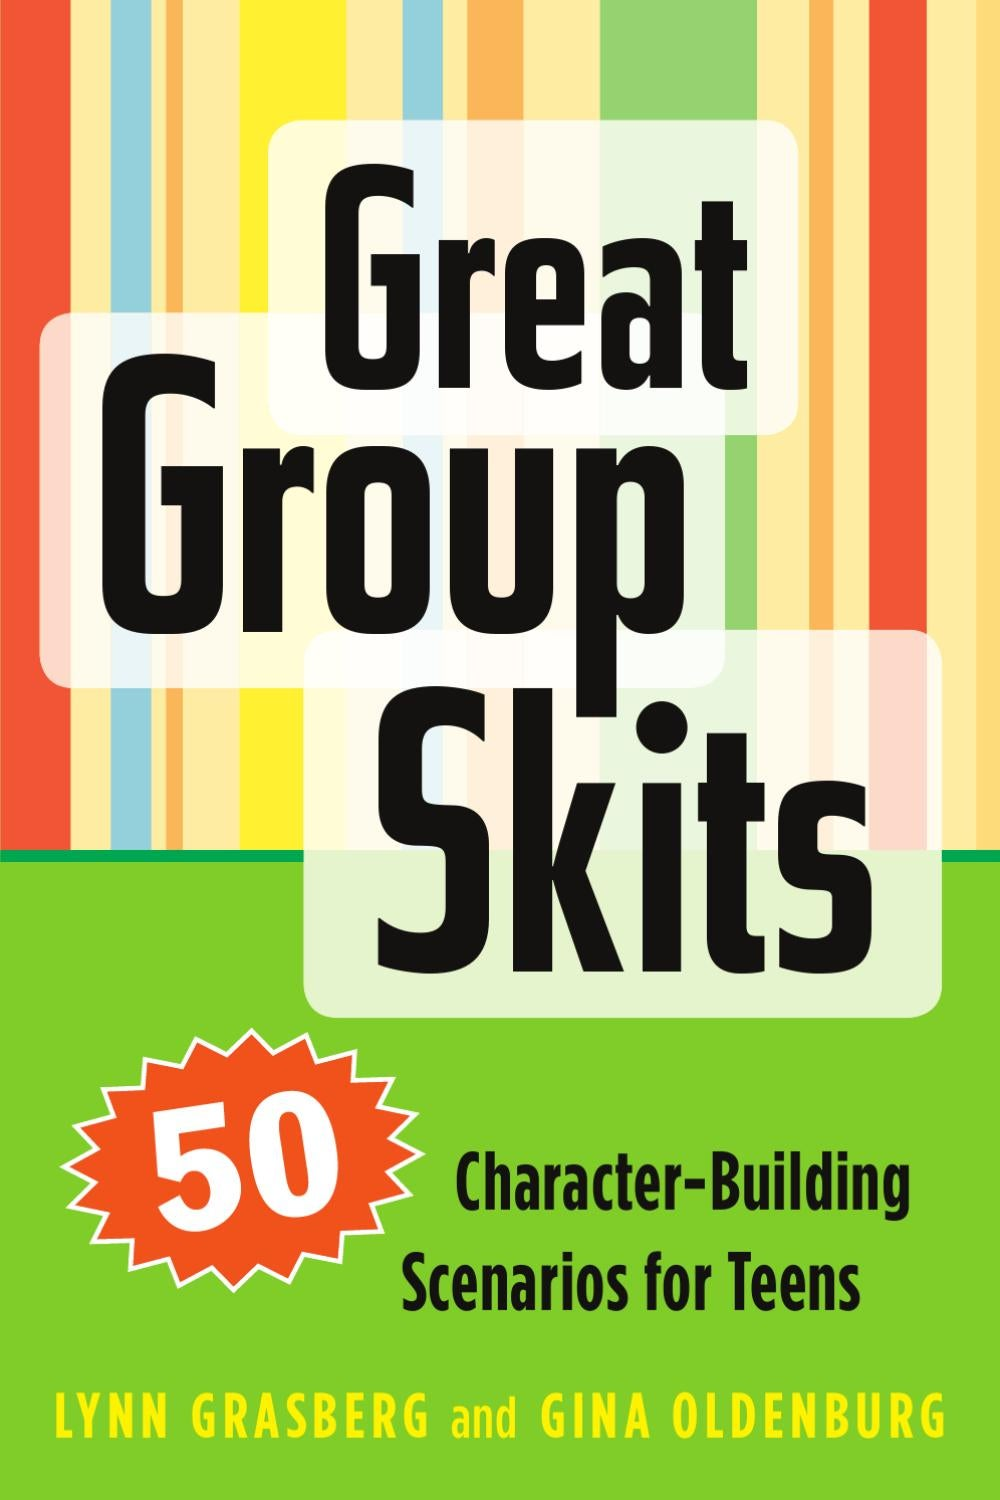 great group skits : 50 character-building scenarios for teens by